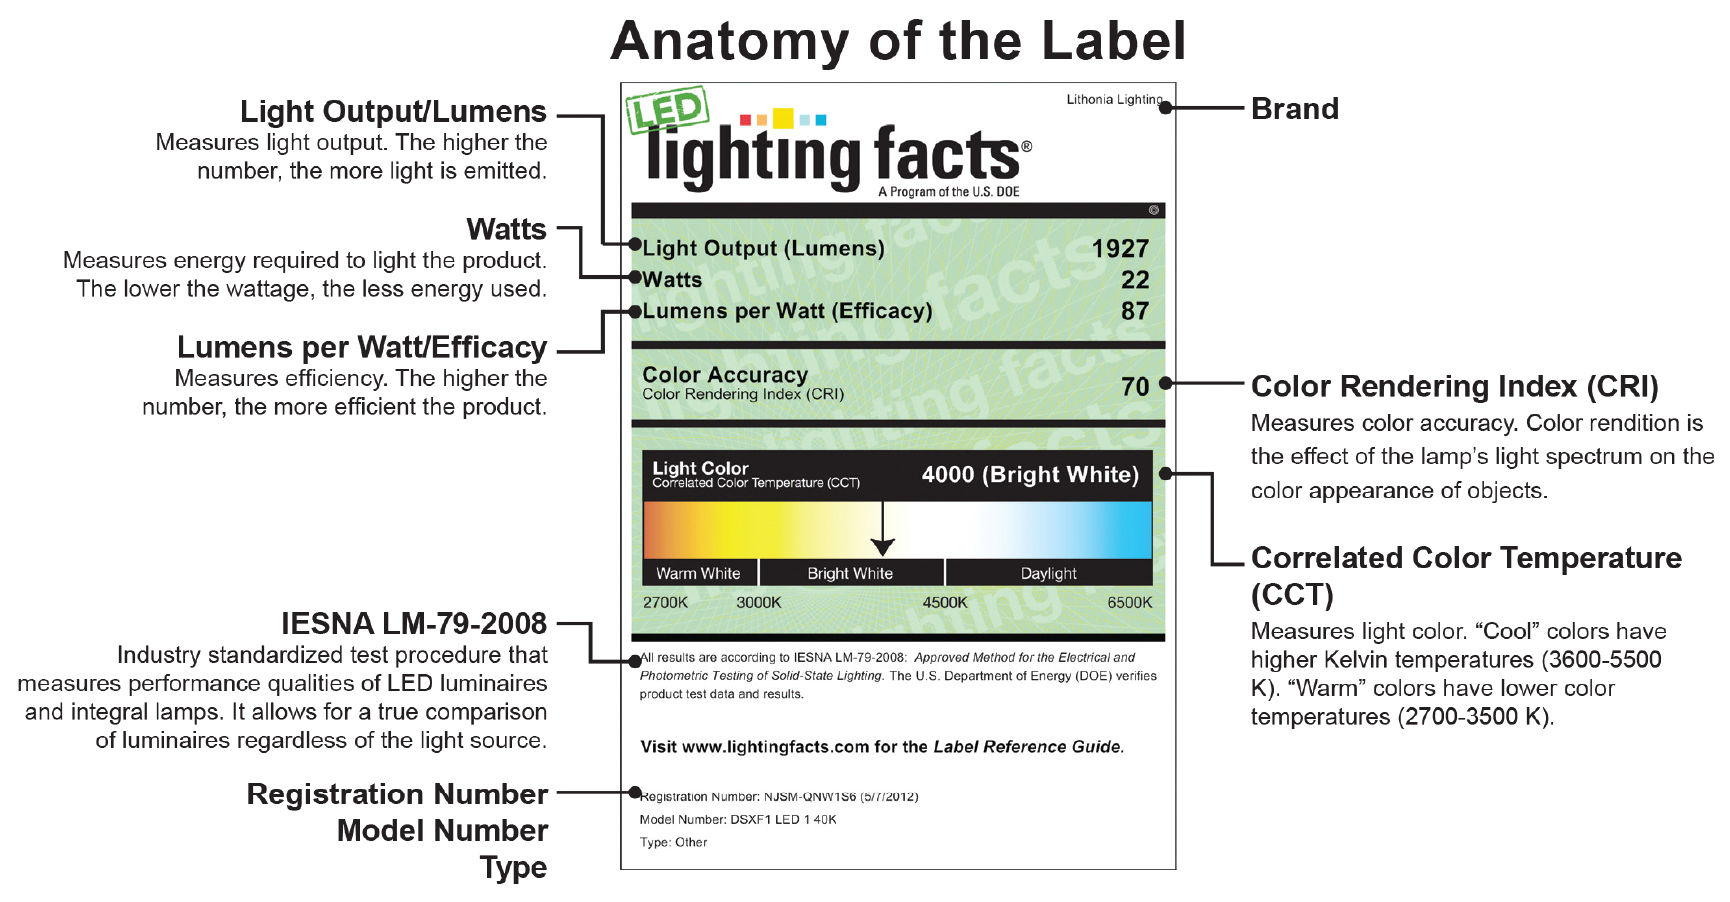 LED Lighting Facts Labels Anatomy